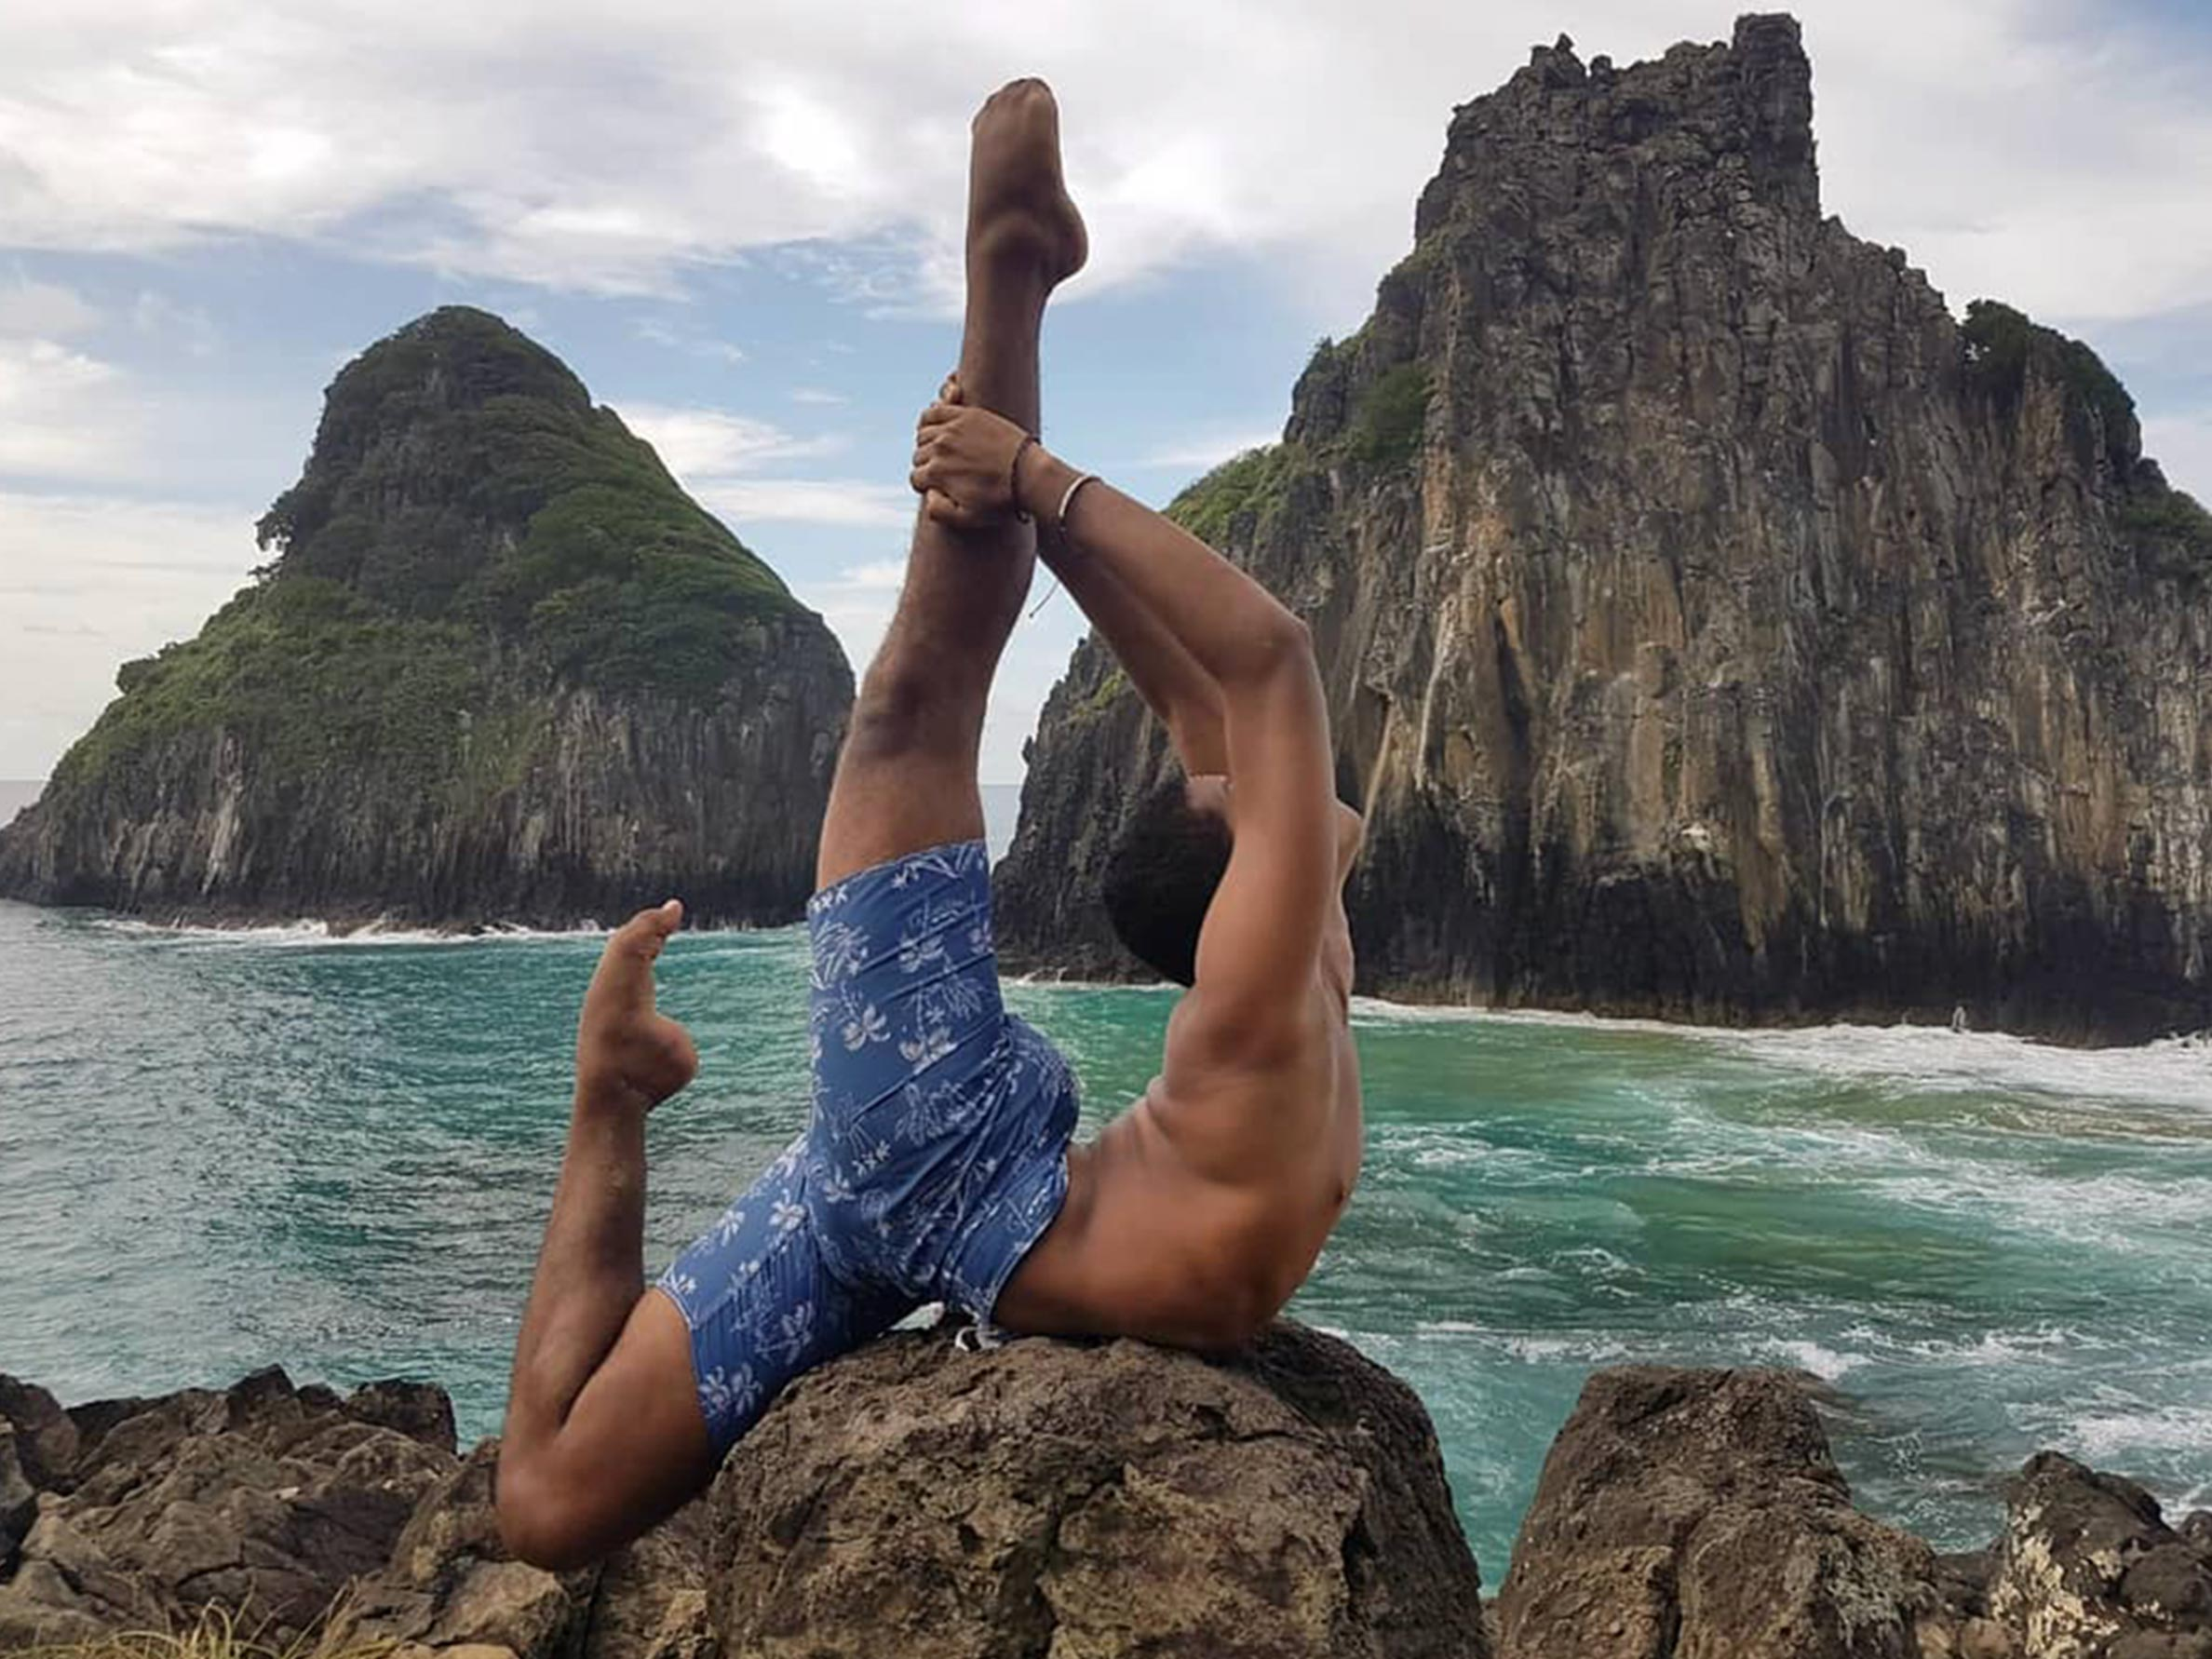 Interview with a contortionist: Euler Kalebe